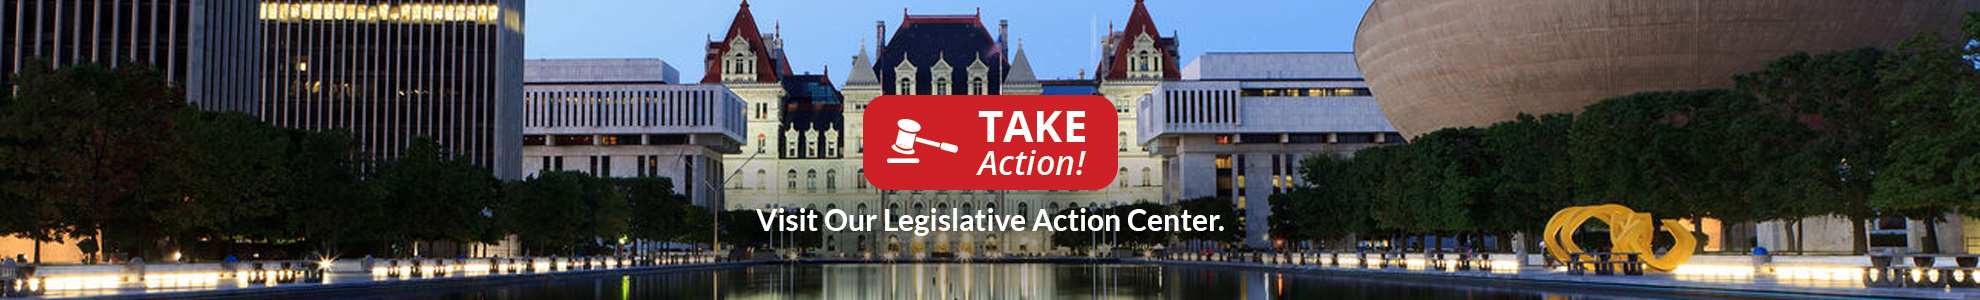 take-action-header